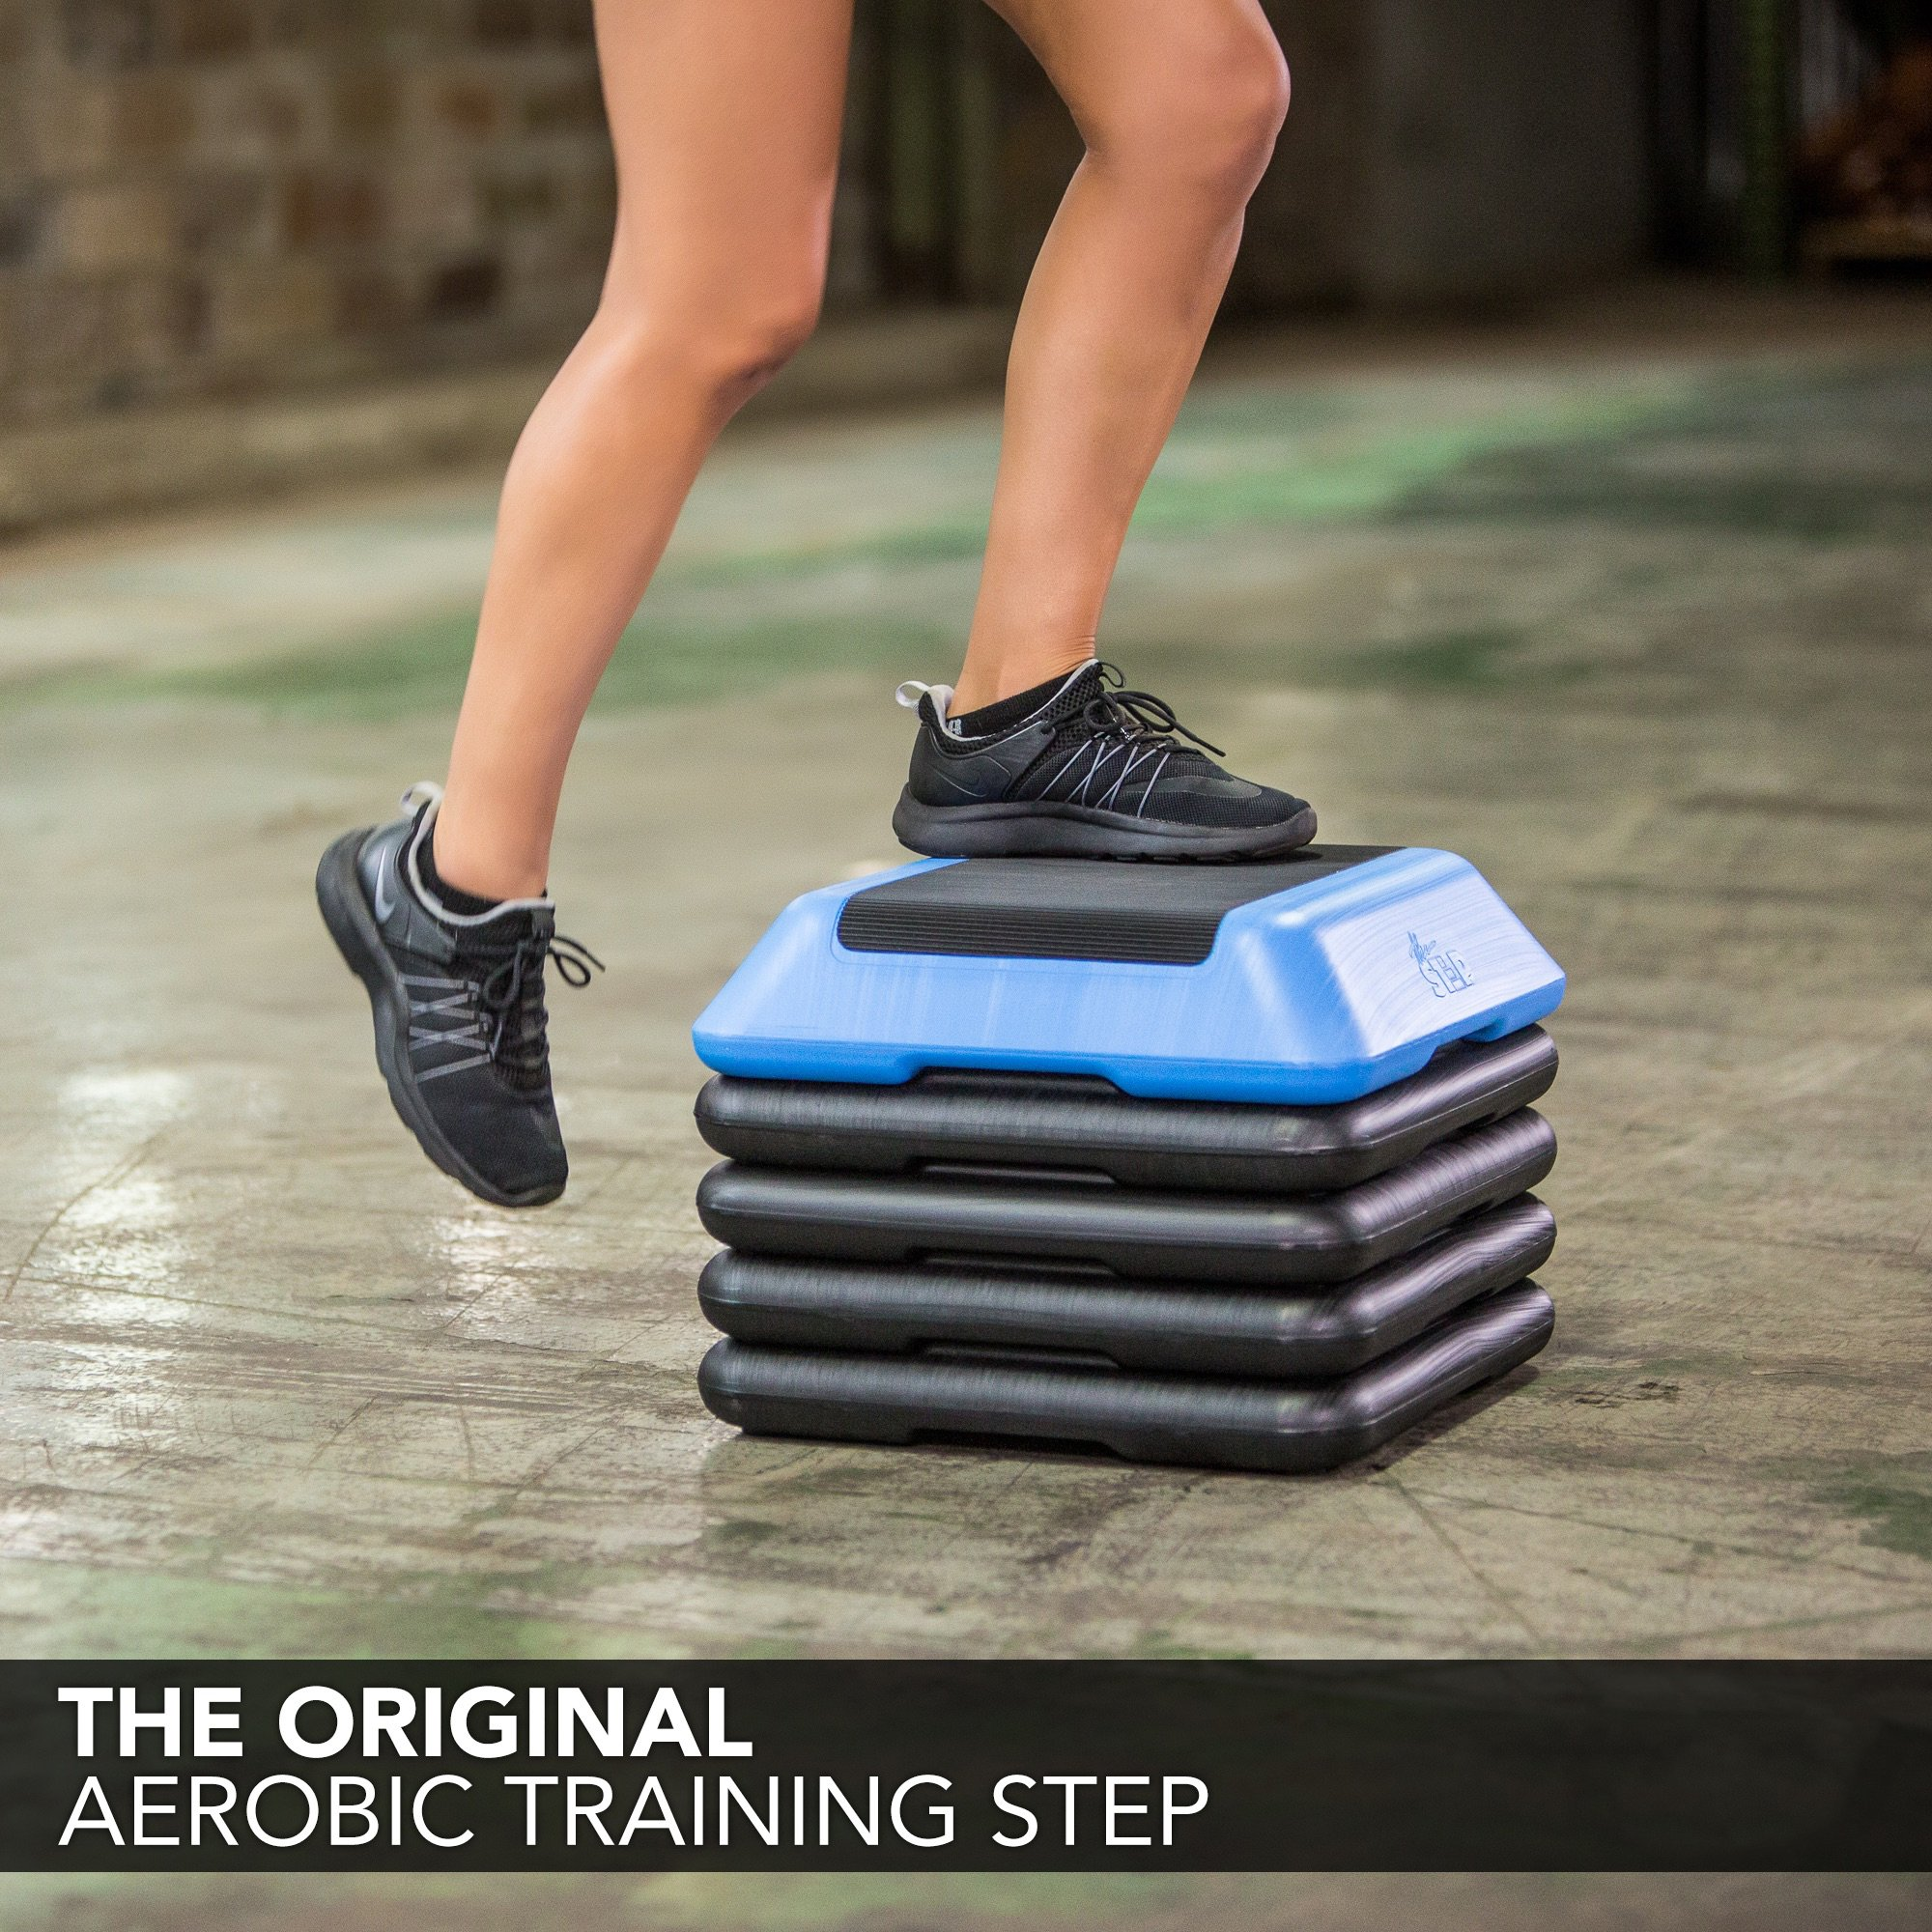 The Step High Step Aerobic Exercise Nonslip Platform Includes 4 Risers and Streaming Workout Videos by The Step (Image #6)